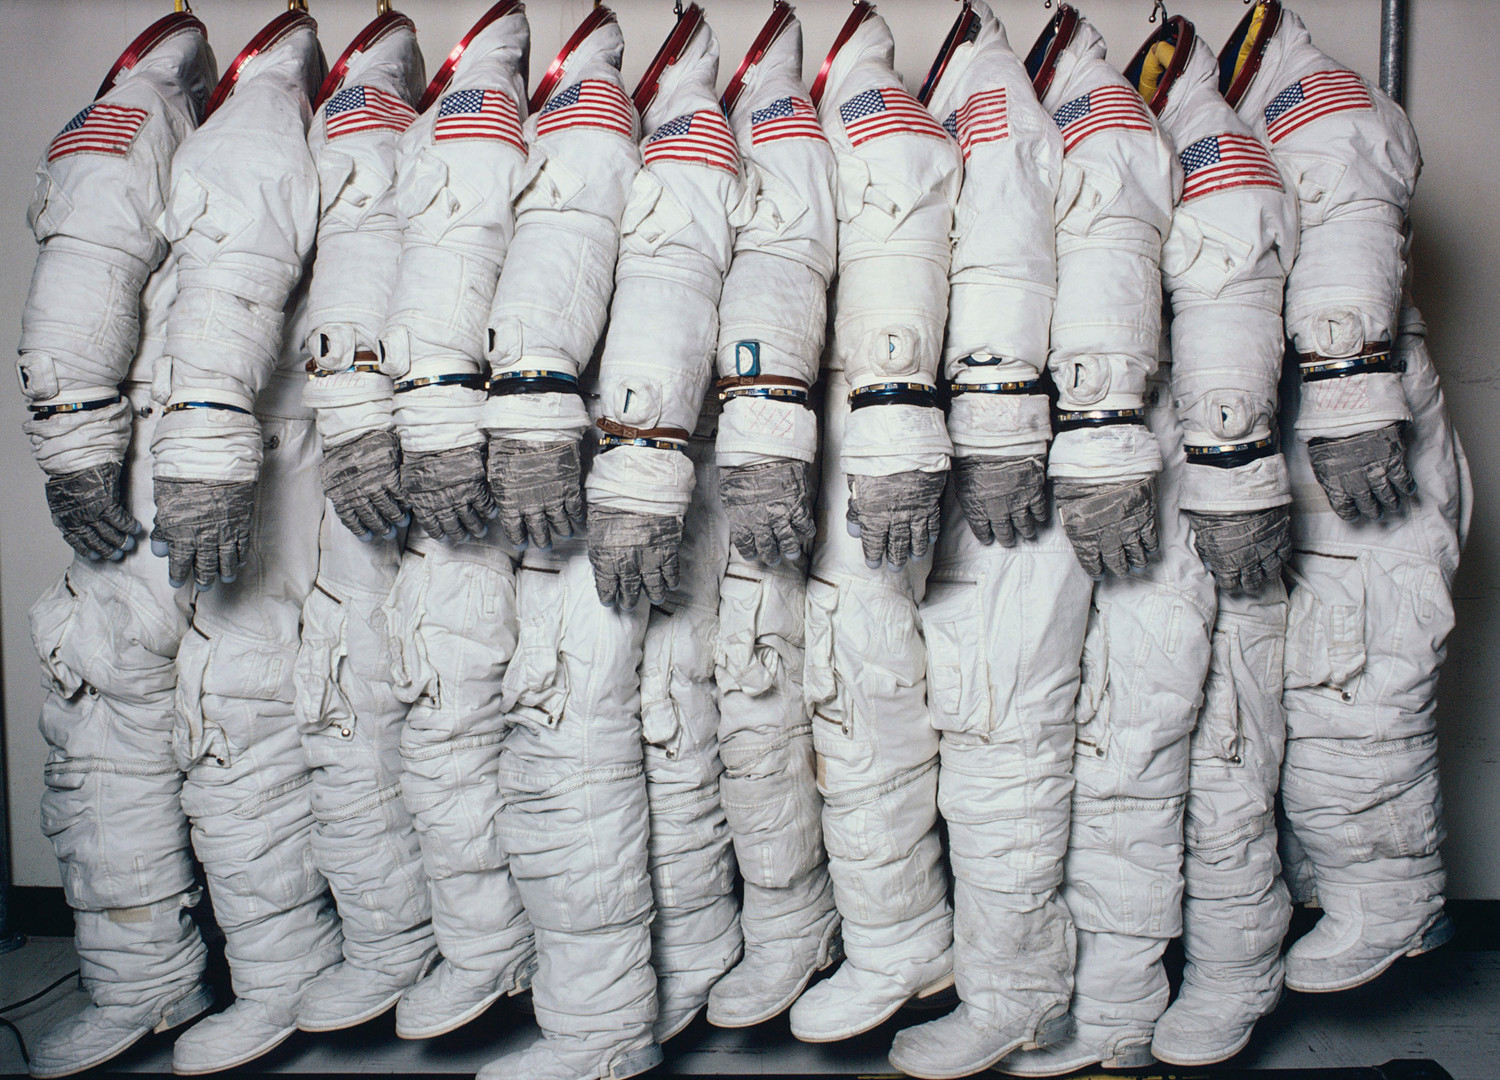 Hiro, Apollo Spaceflight Training Suits, Houston, Texas, June 27, 1978